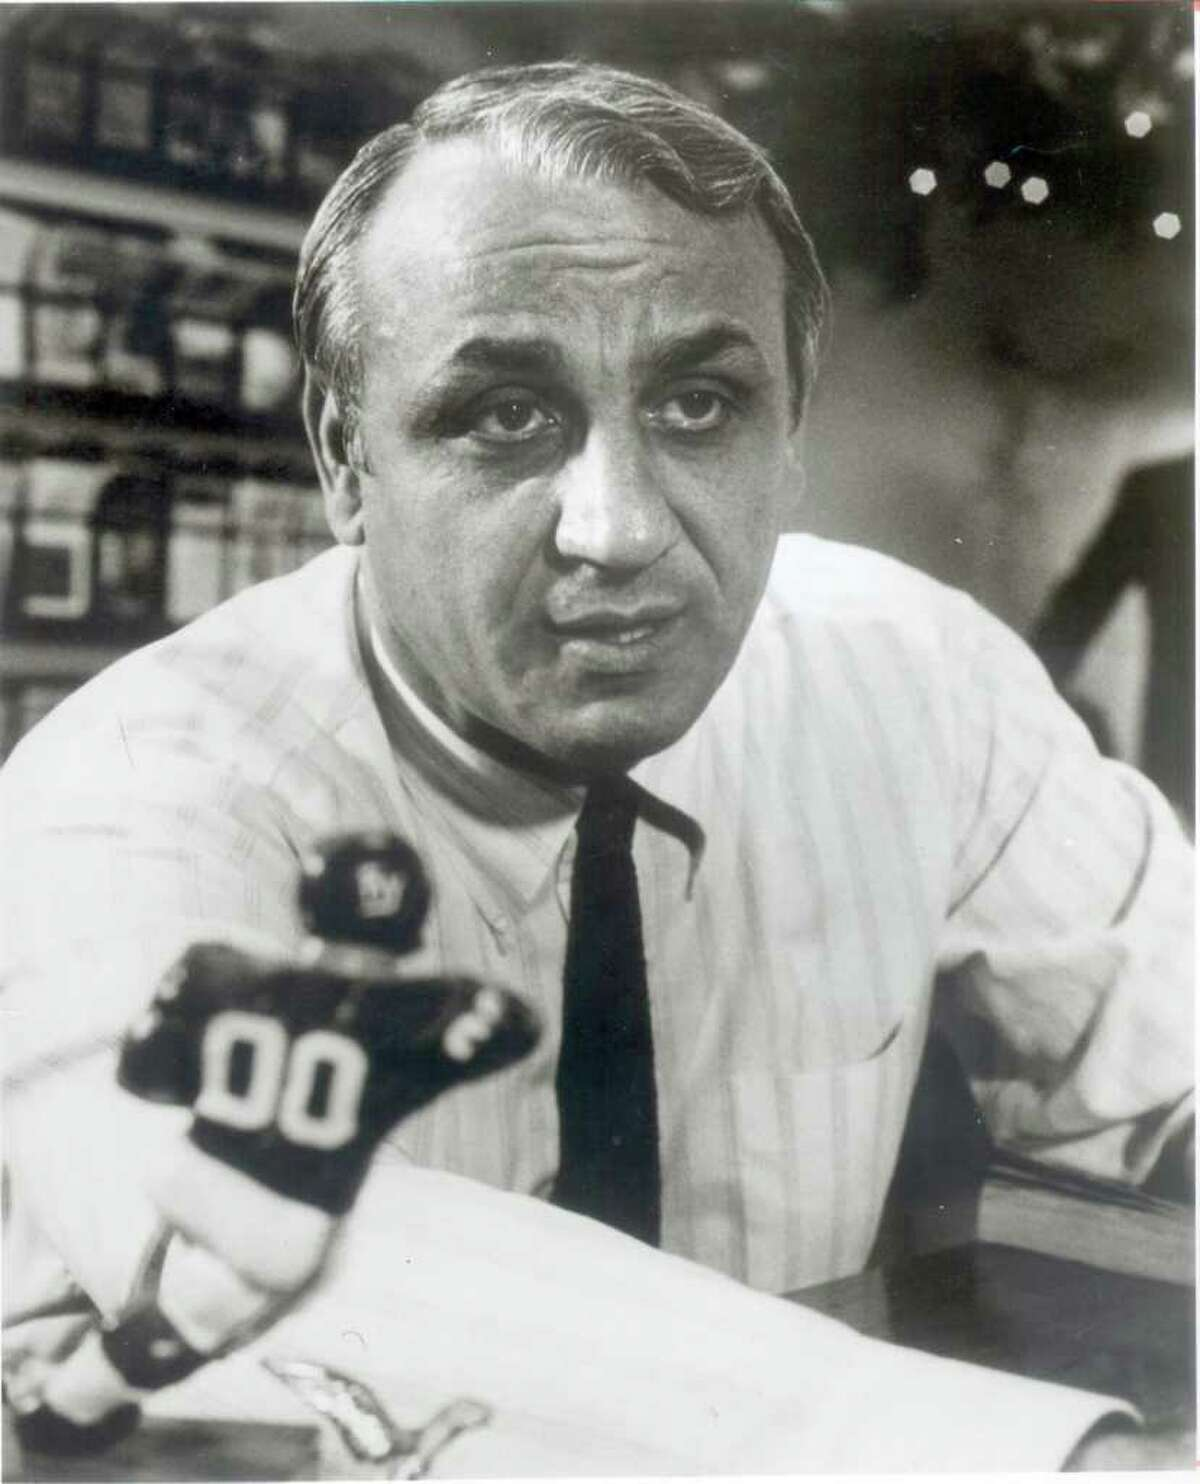 Andy Robustelli, an NFL Hall of Famer and Stamford resident, died Tuesday, May 31, 2011 at 85.